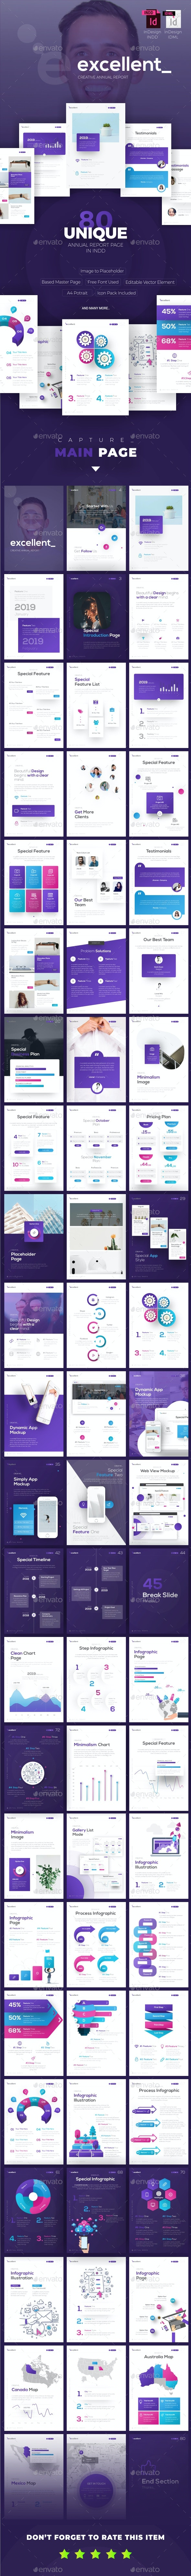 Excellent Creative Annual Report Template - Magazines Print Templates